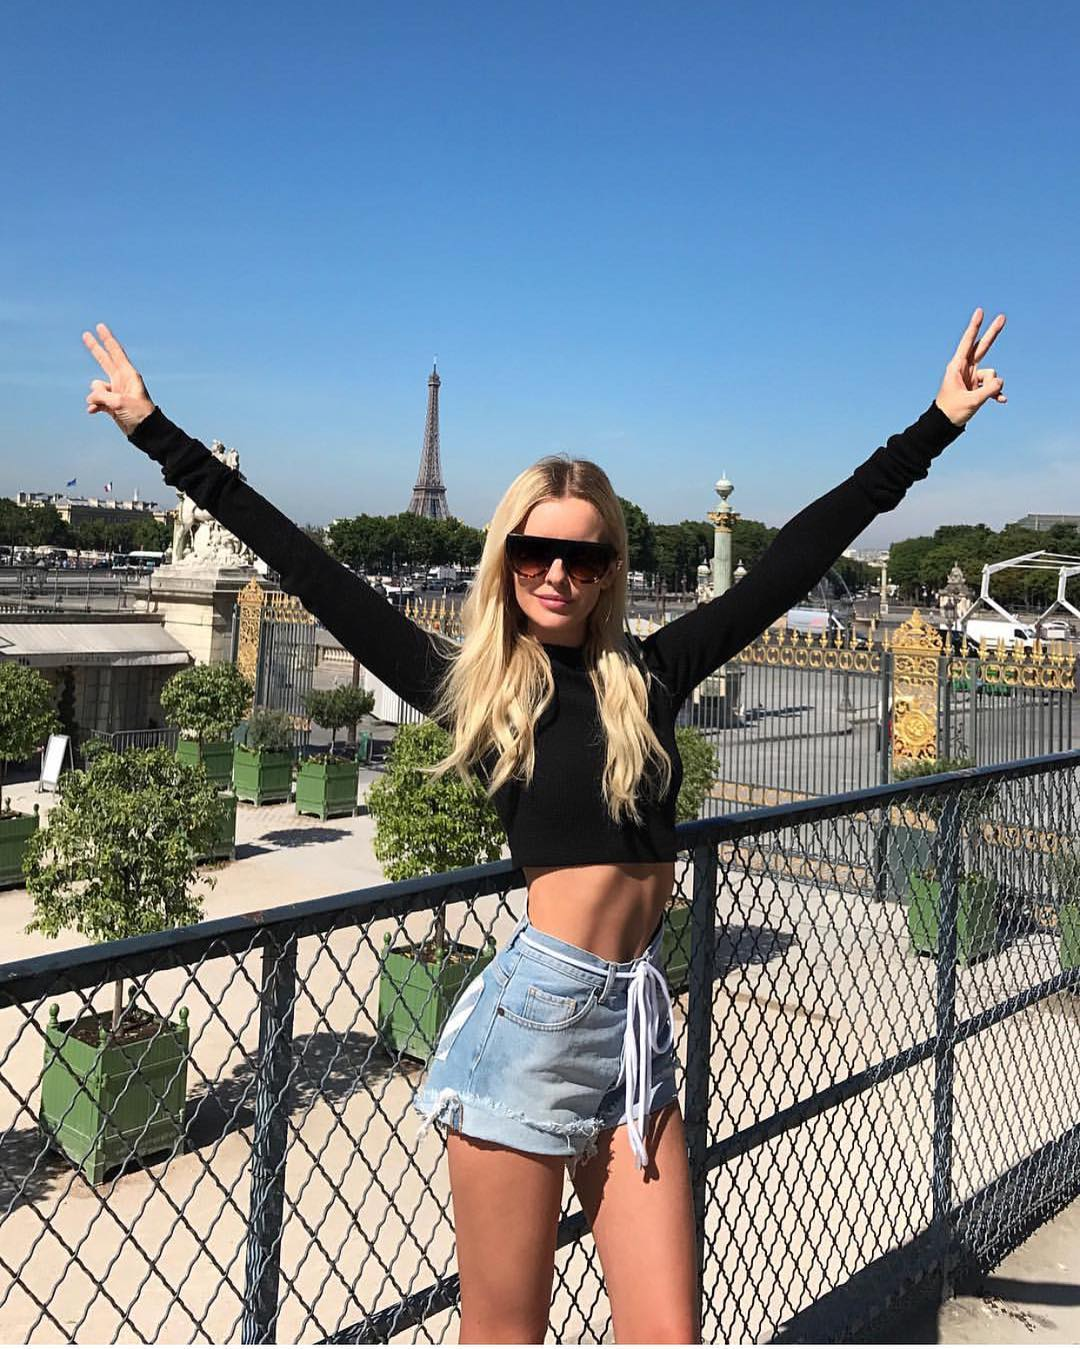 Black Long Sleeve Crop Top And Denim Shorts For Parisian Summer 2020